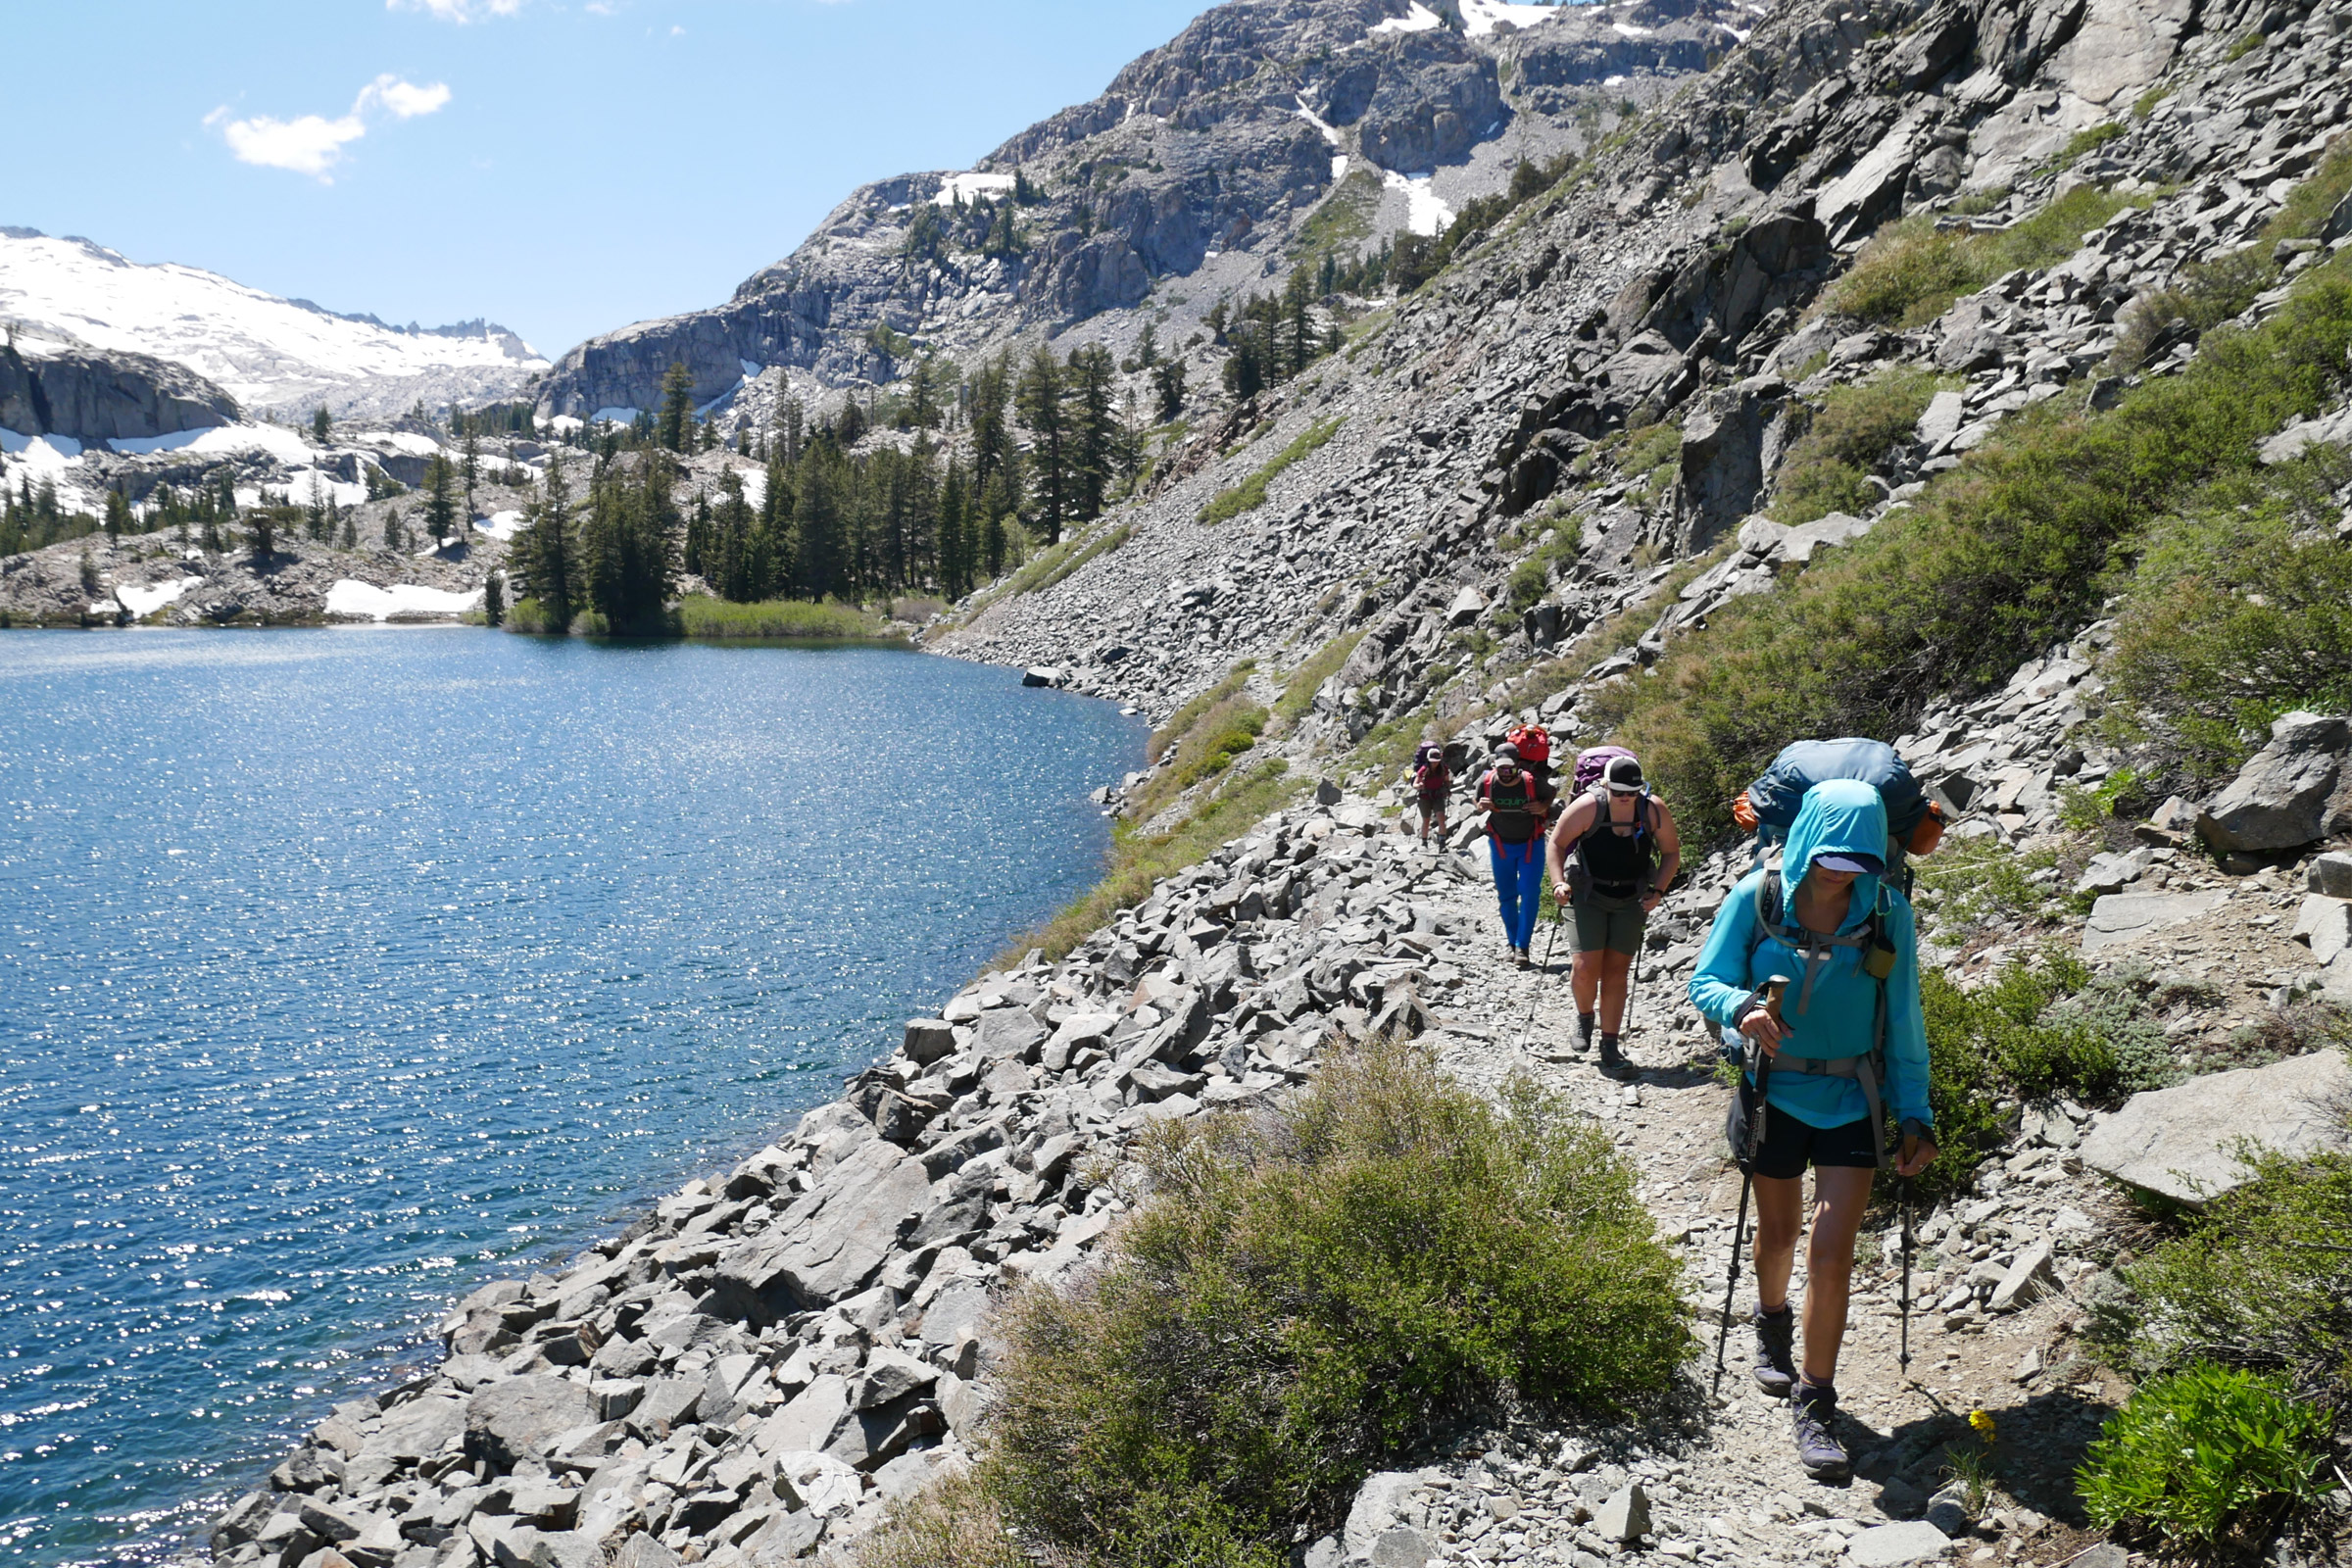 10 reasons to give trekking poles a try